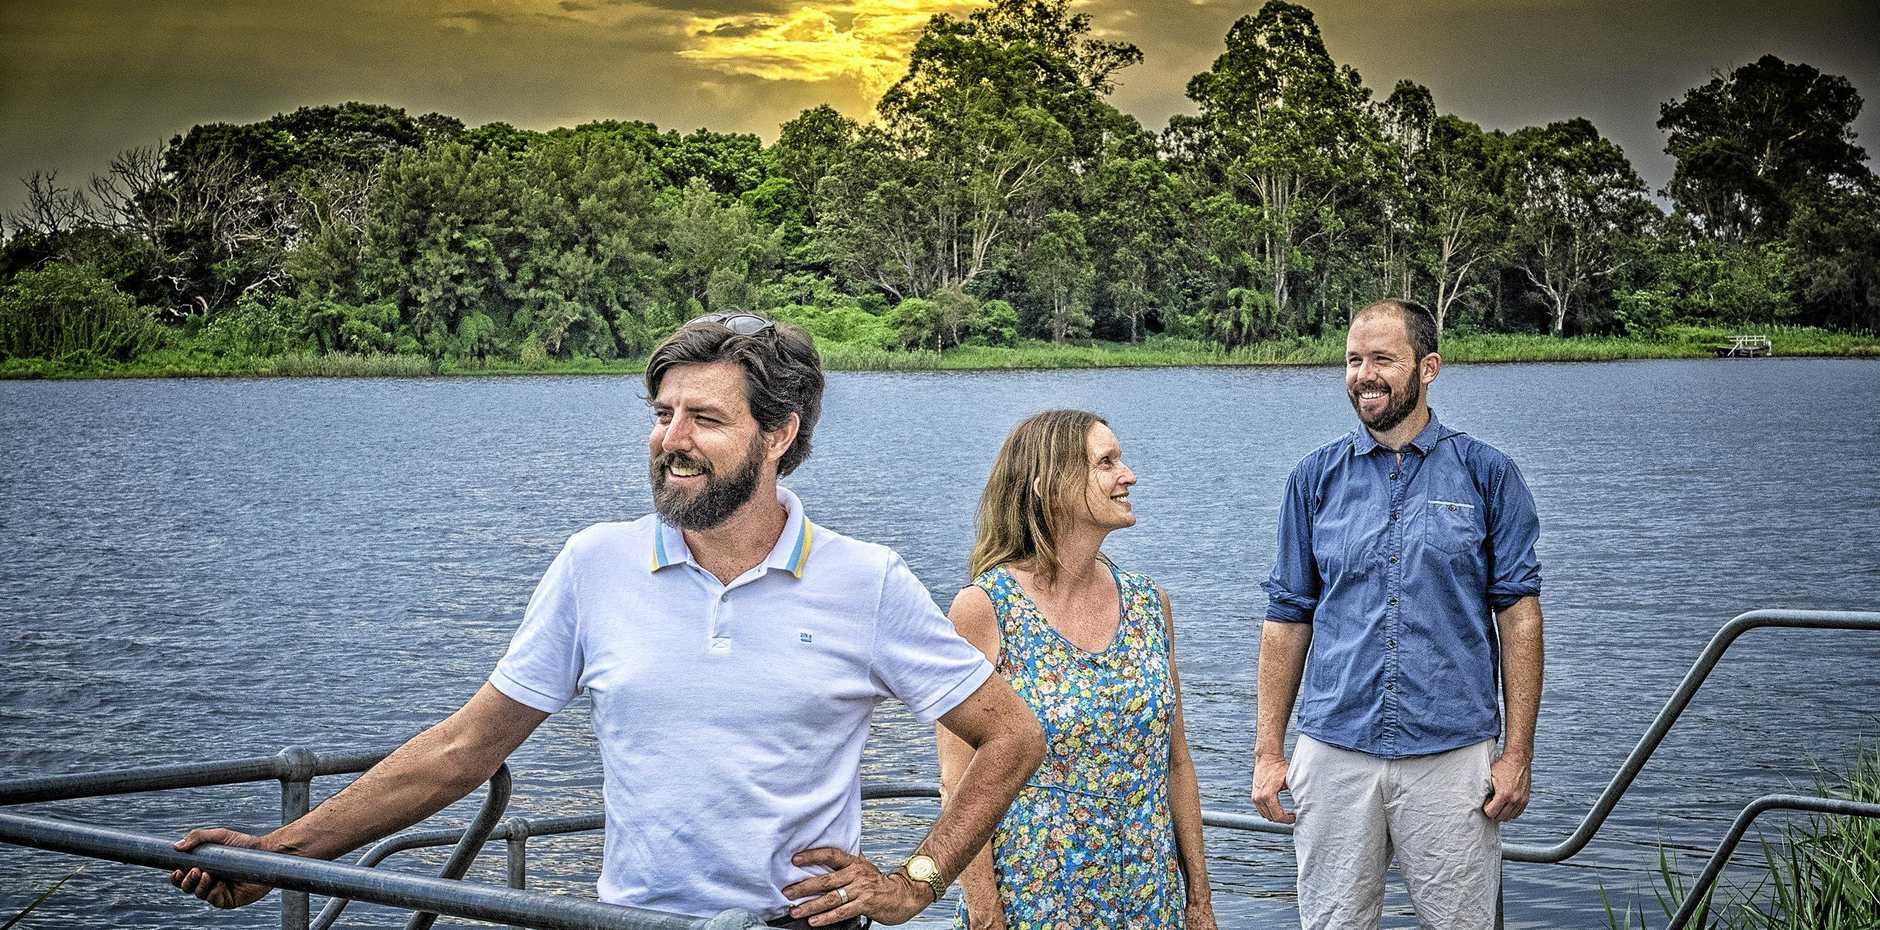 Organisers of the new 53 Islands project Glen McClymont, Claire Aman and Kieran McAndrew in front of Susan Island, near Grafton.